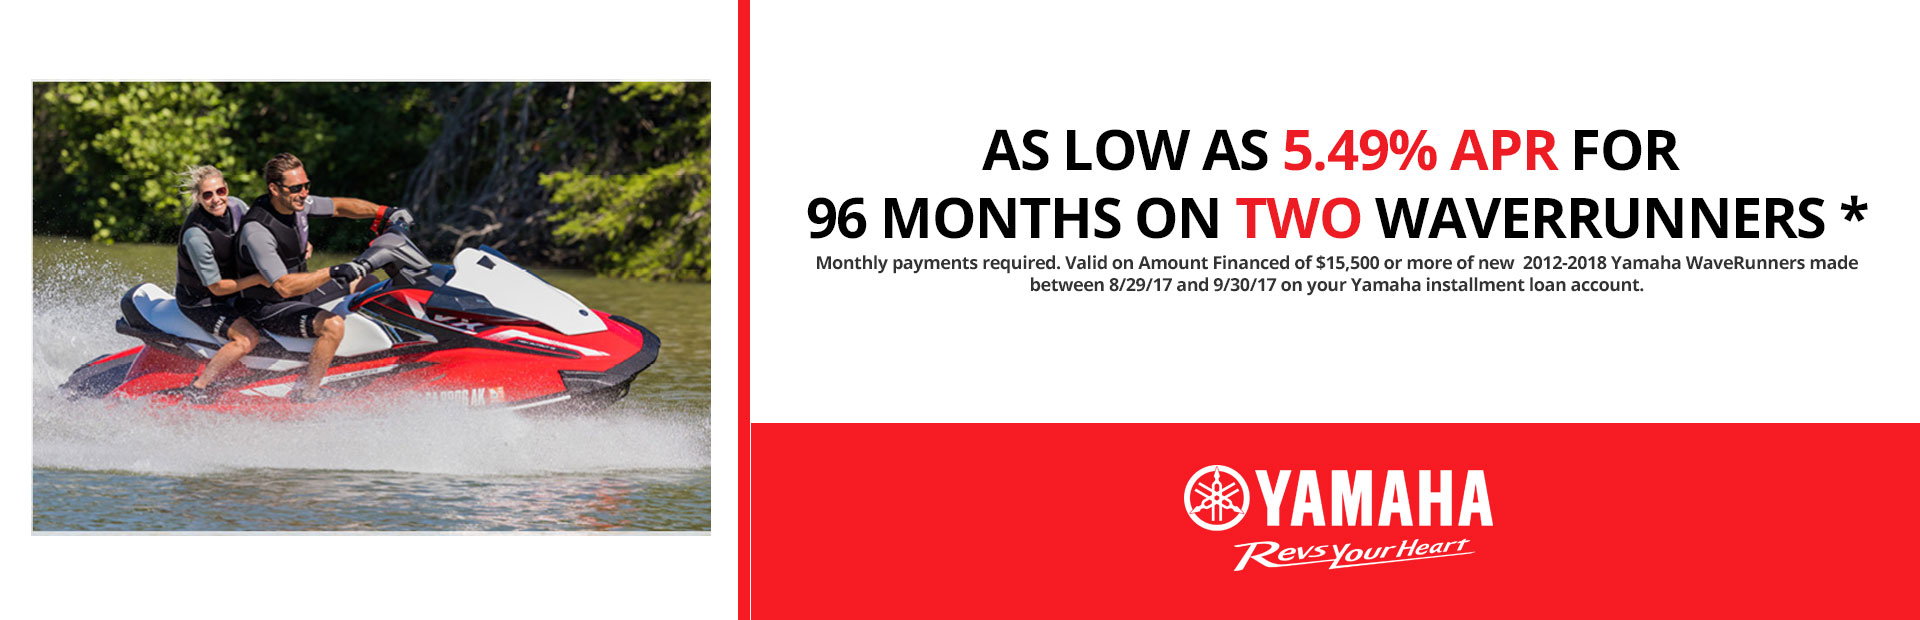 Yamaha: As Low As 5.49% APR For 96 Months